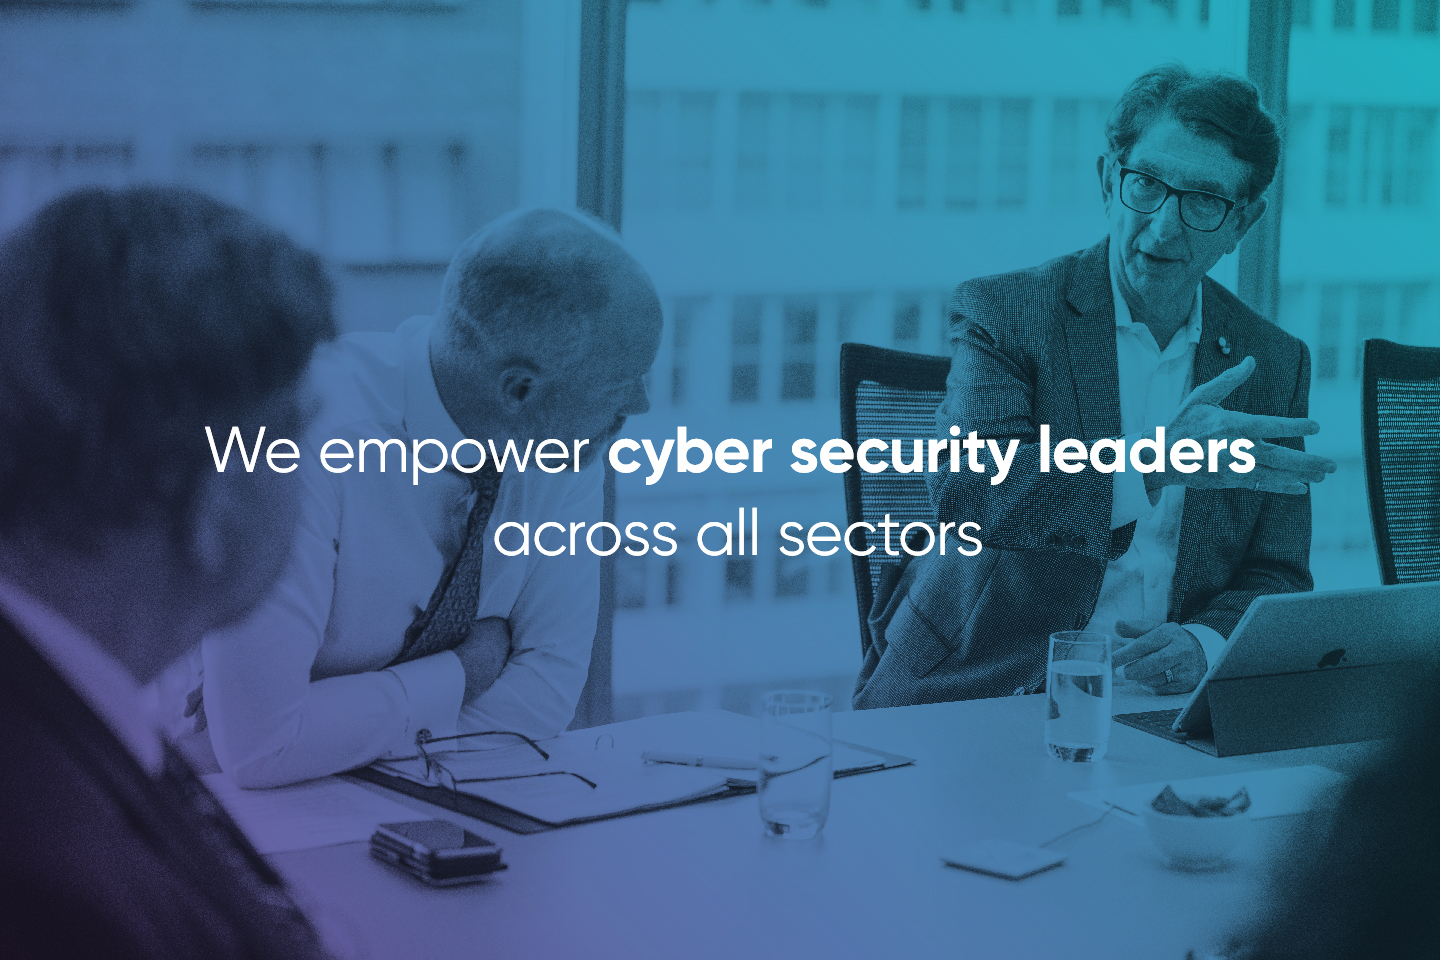 We empower cyber security leaders across all sectors